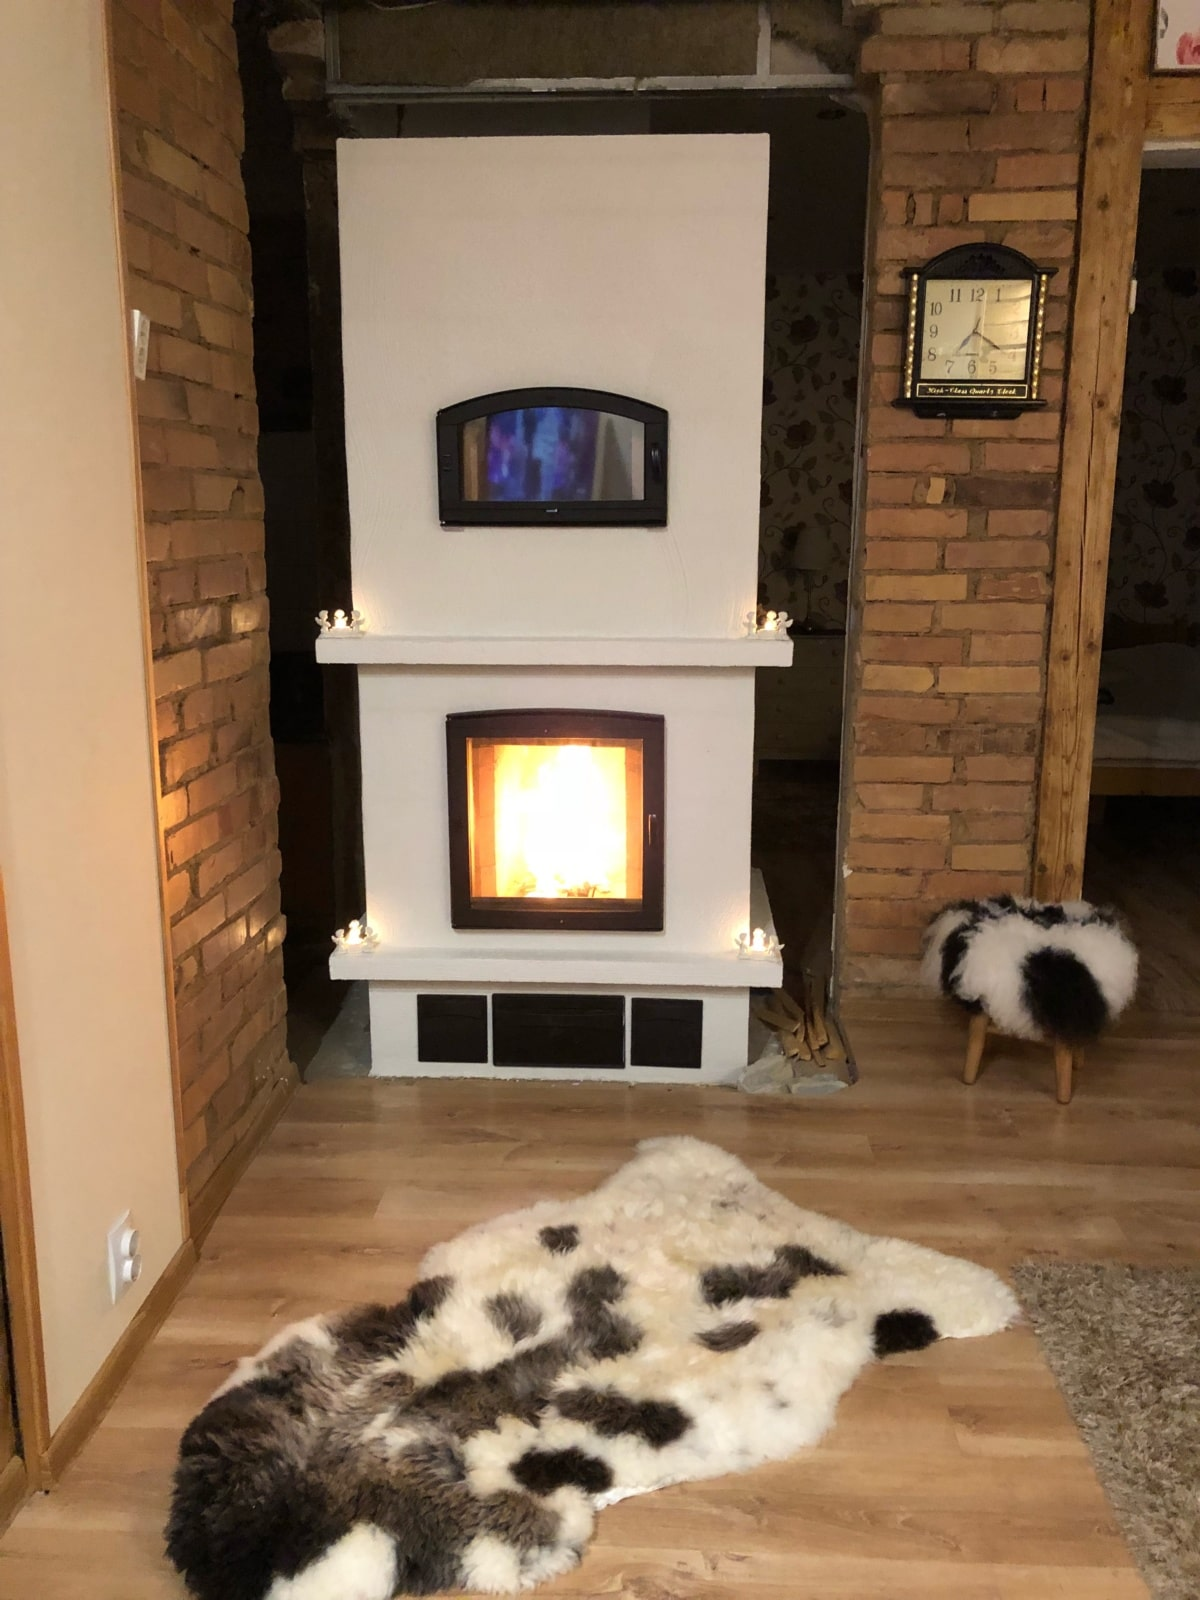 Modulating furnace Mats with a baking oven